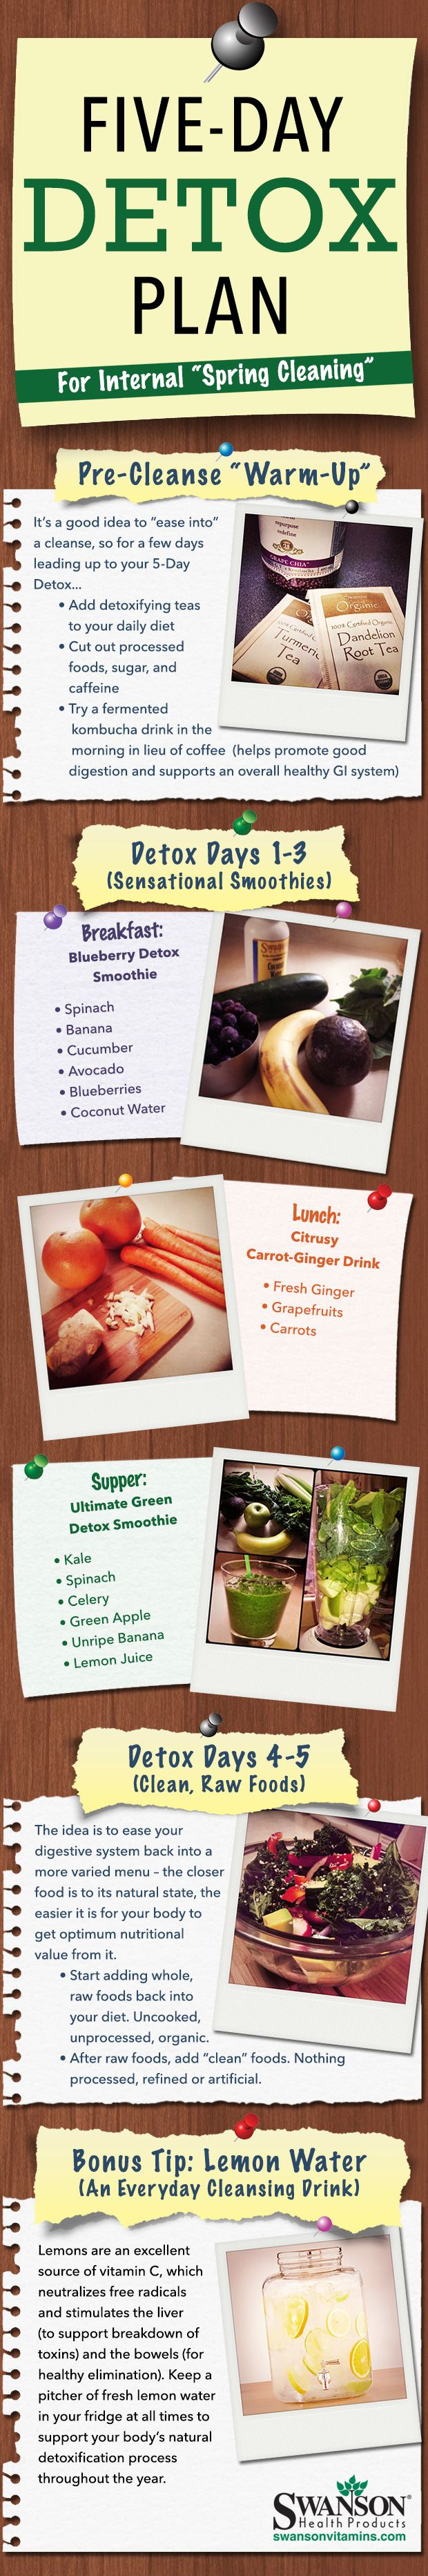 5 Day Detox Plan for Internal Spring Cleaning! Recipes & more. #detox_plan #recipes #health